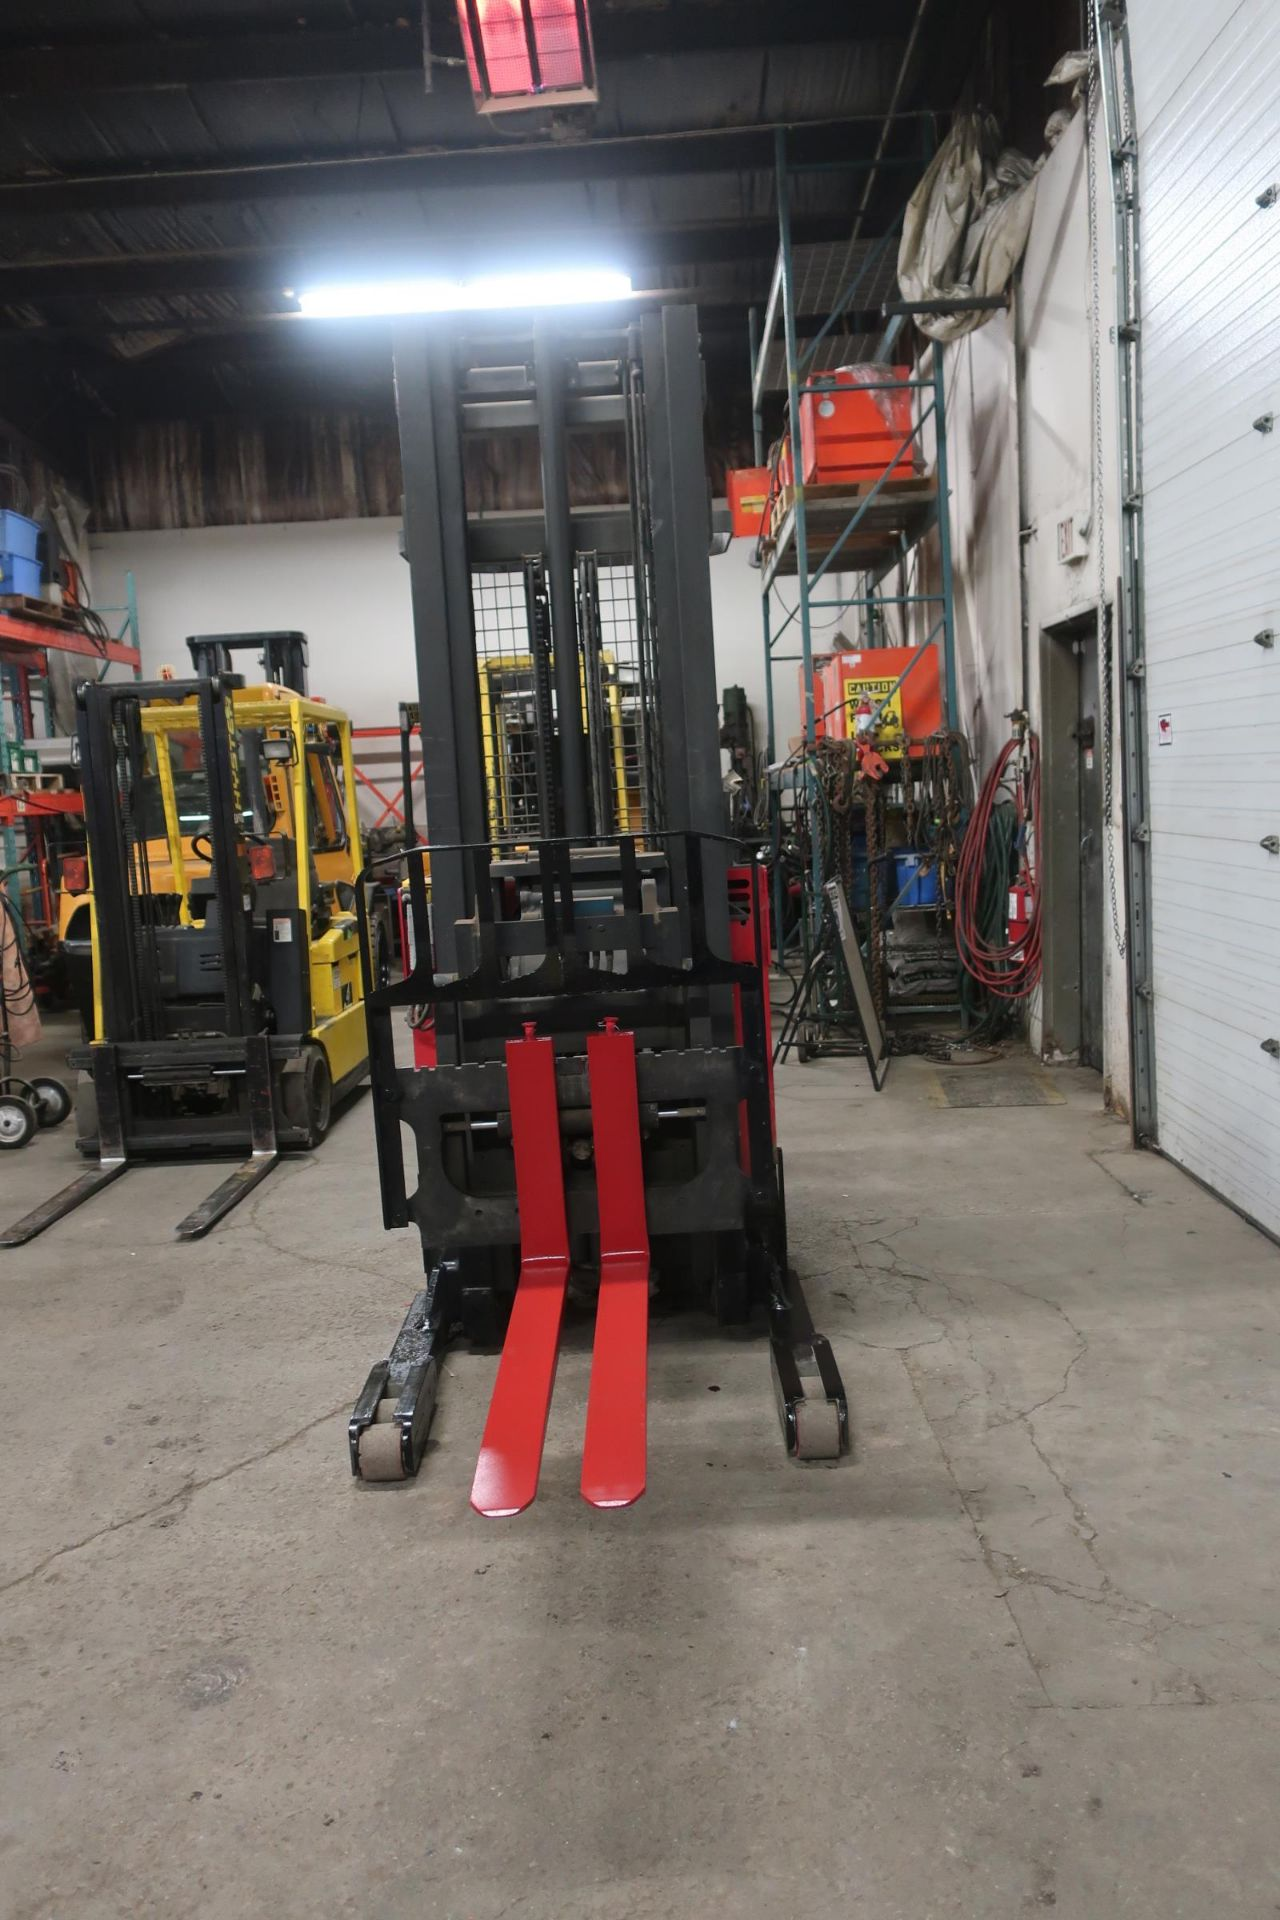 FREE CUSTOMS - 2010 Raymond Reach Truck Pallet Lifter REACH TRUCK electric 4500lbs with sideshift - Image 2 of 2